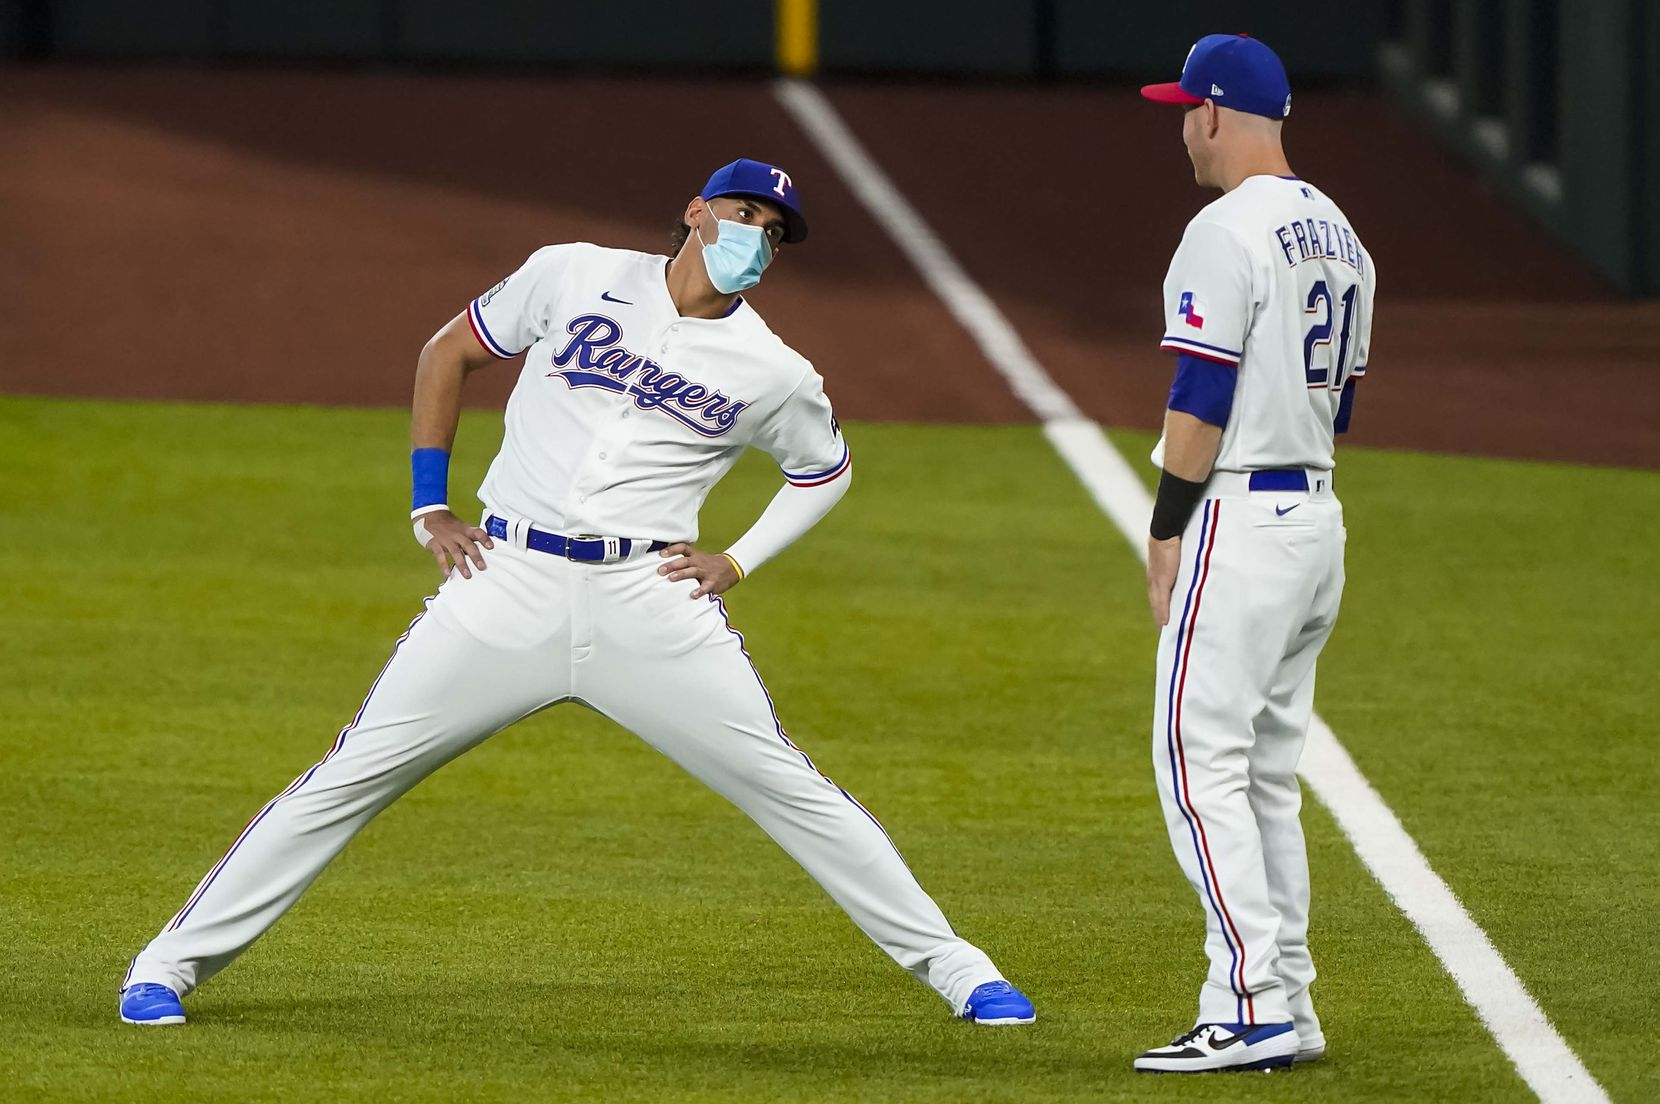 First baseman Ronald Guzman stretches with third baseman Todd Frazier during Texas Rangers Summer Camp at Globe Life Field on Thursday, July 16, 2020.